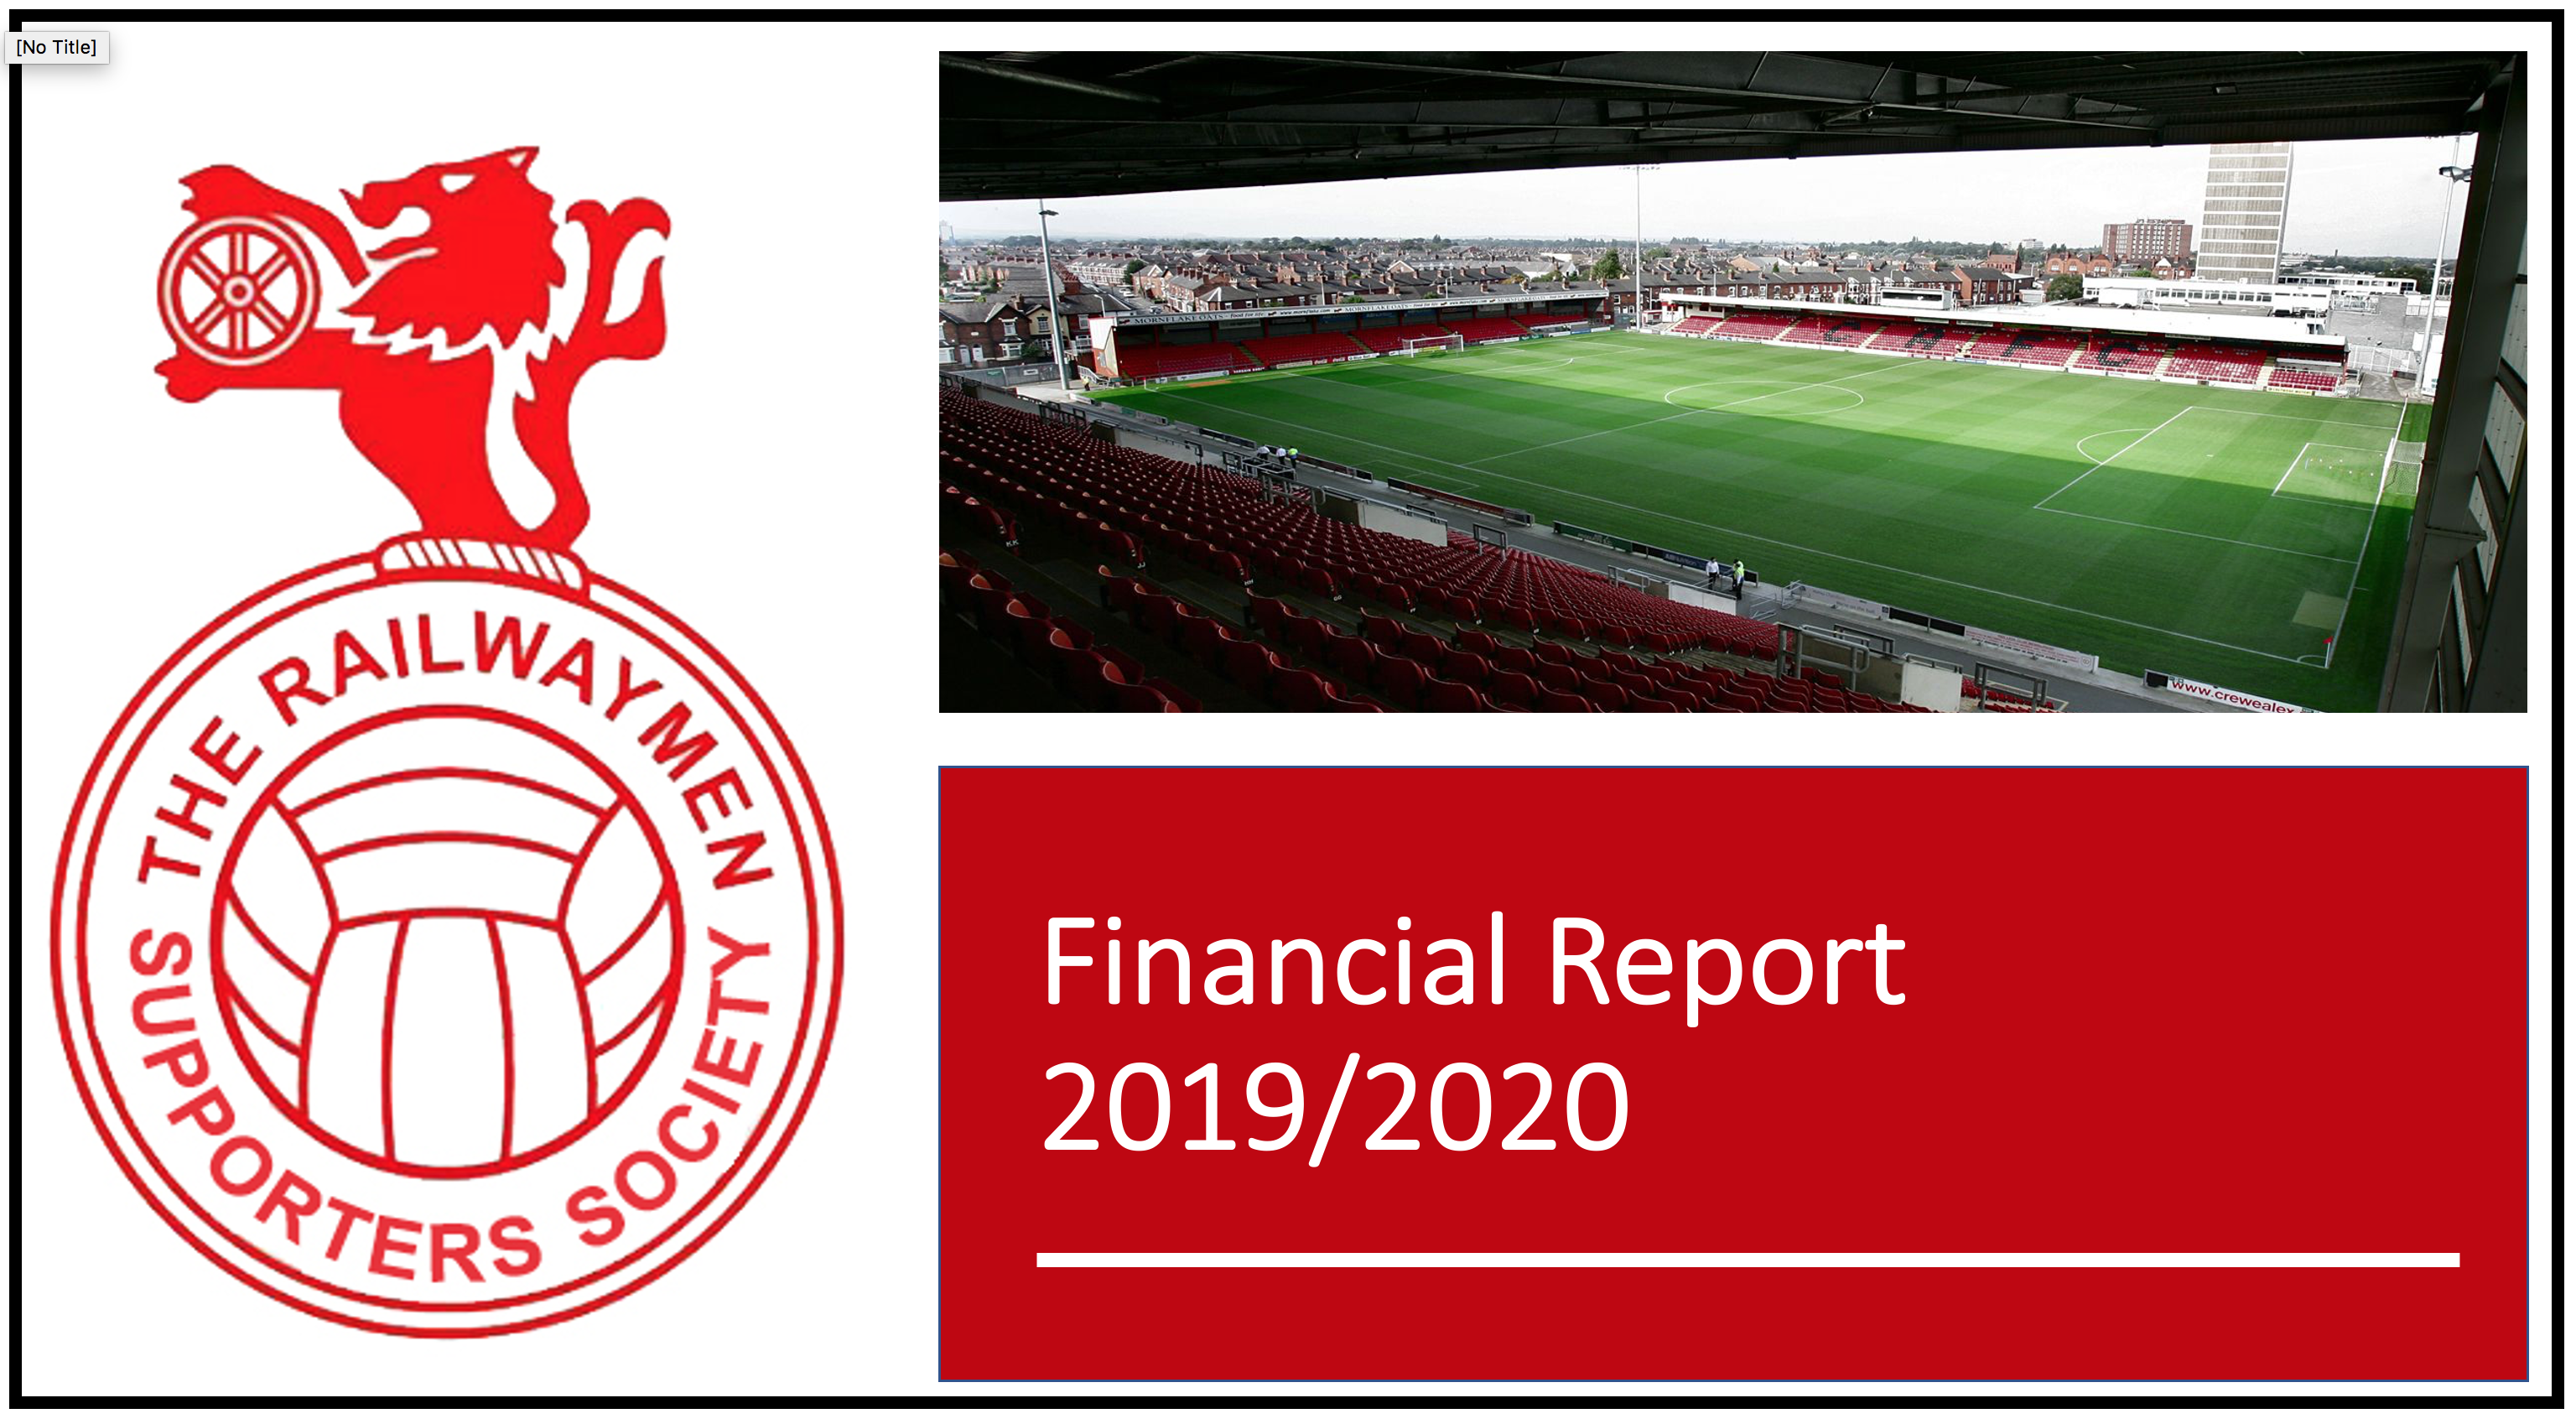 Railwaymen Financial Report 2020